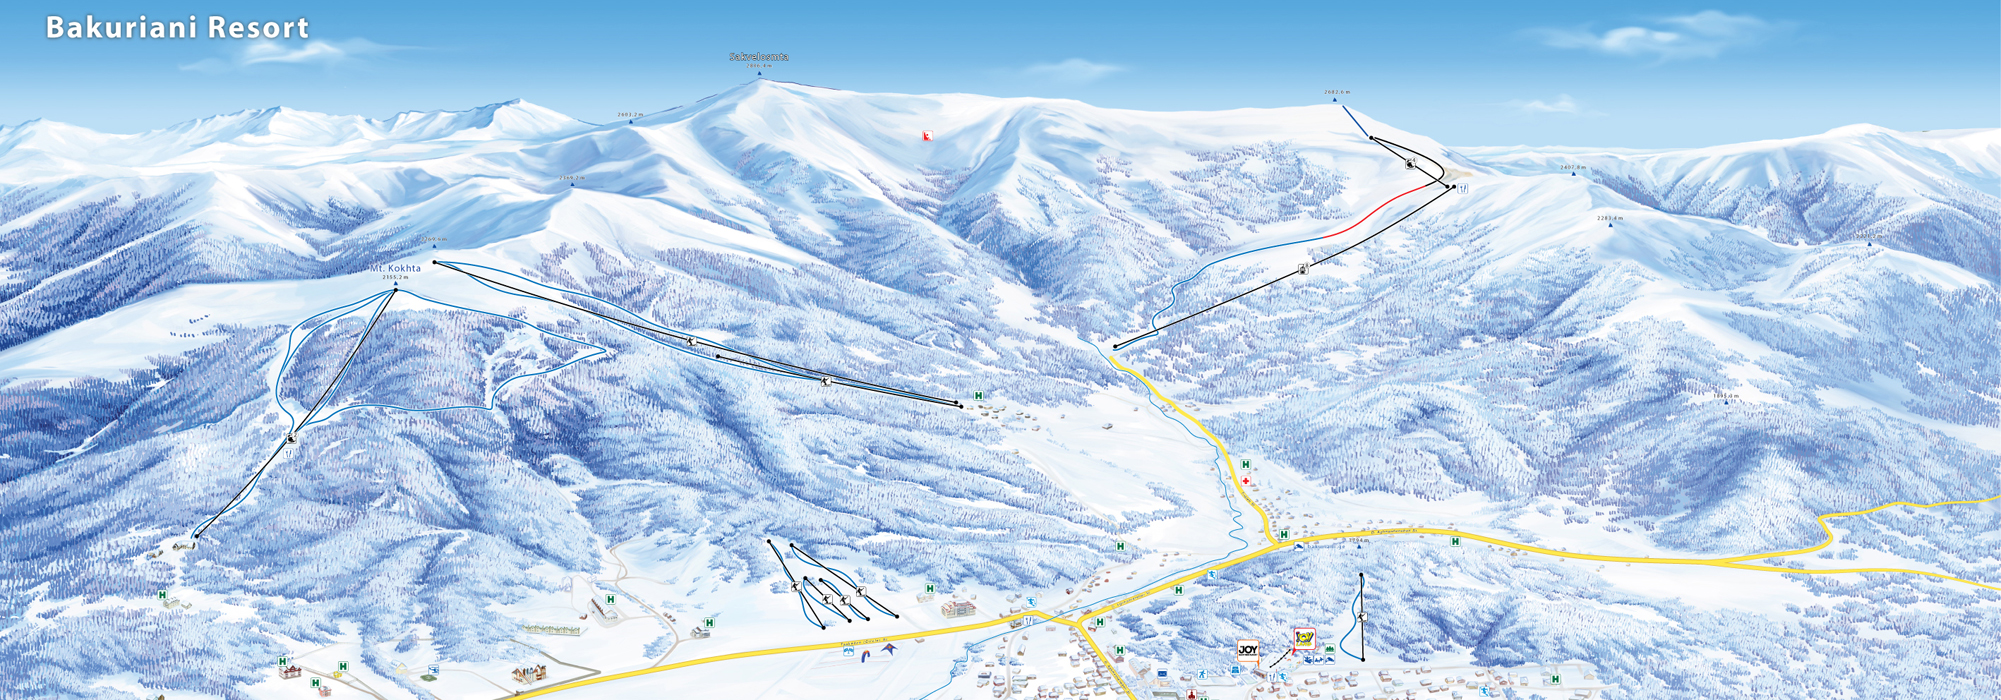 Ski Map Bakuriani